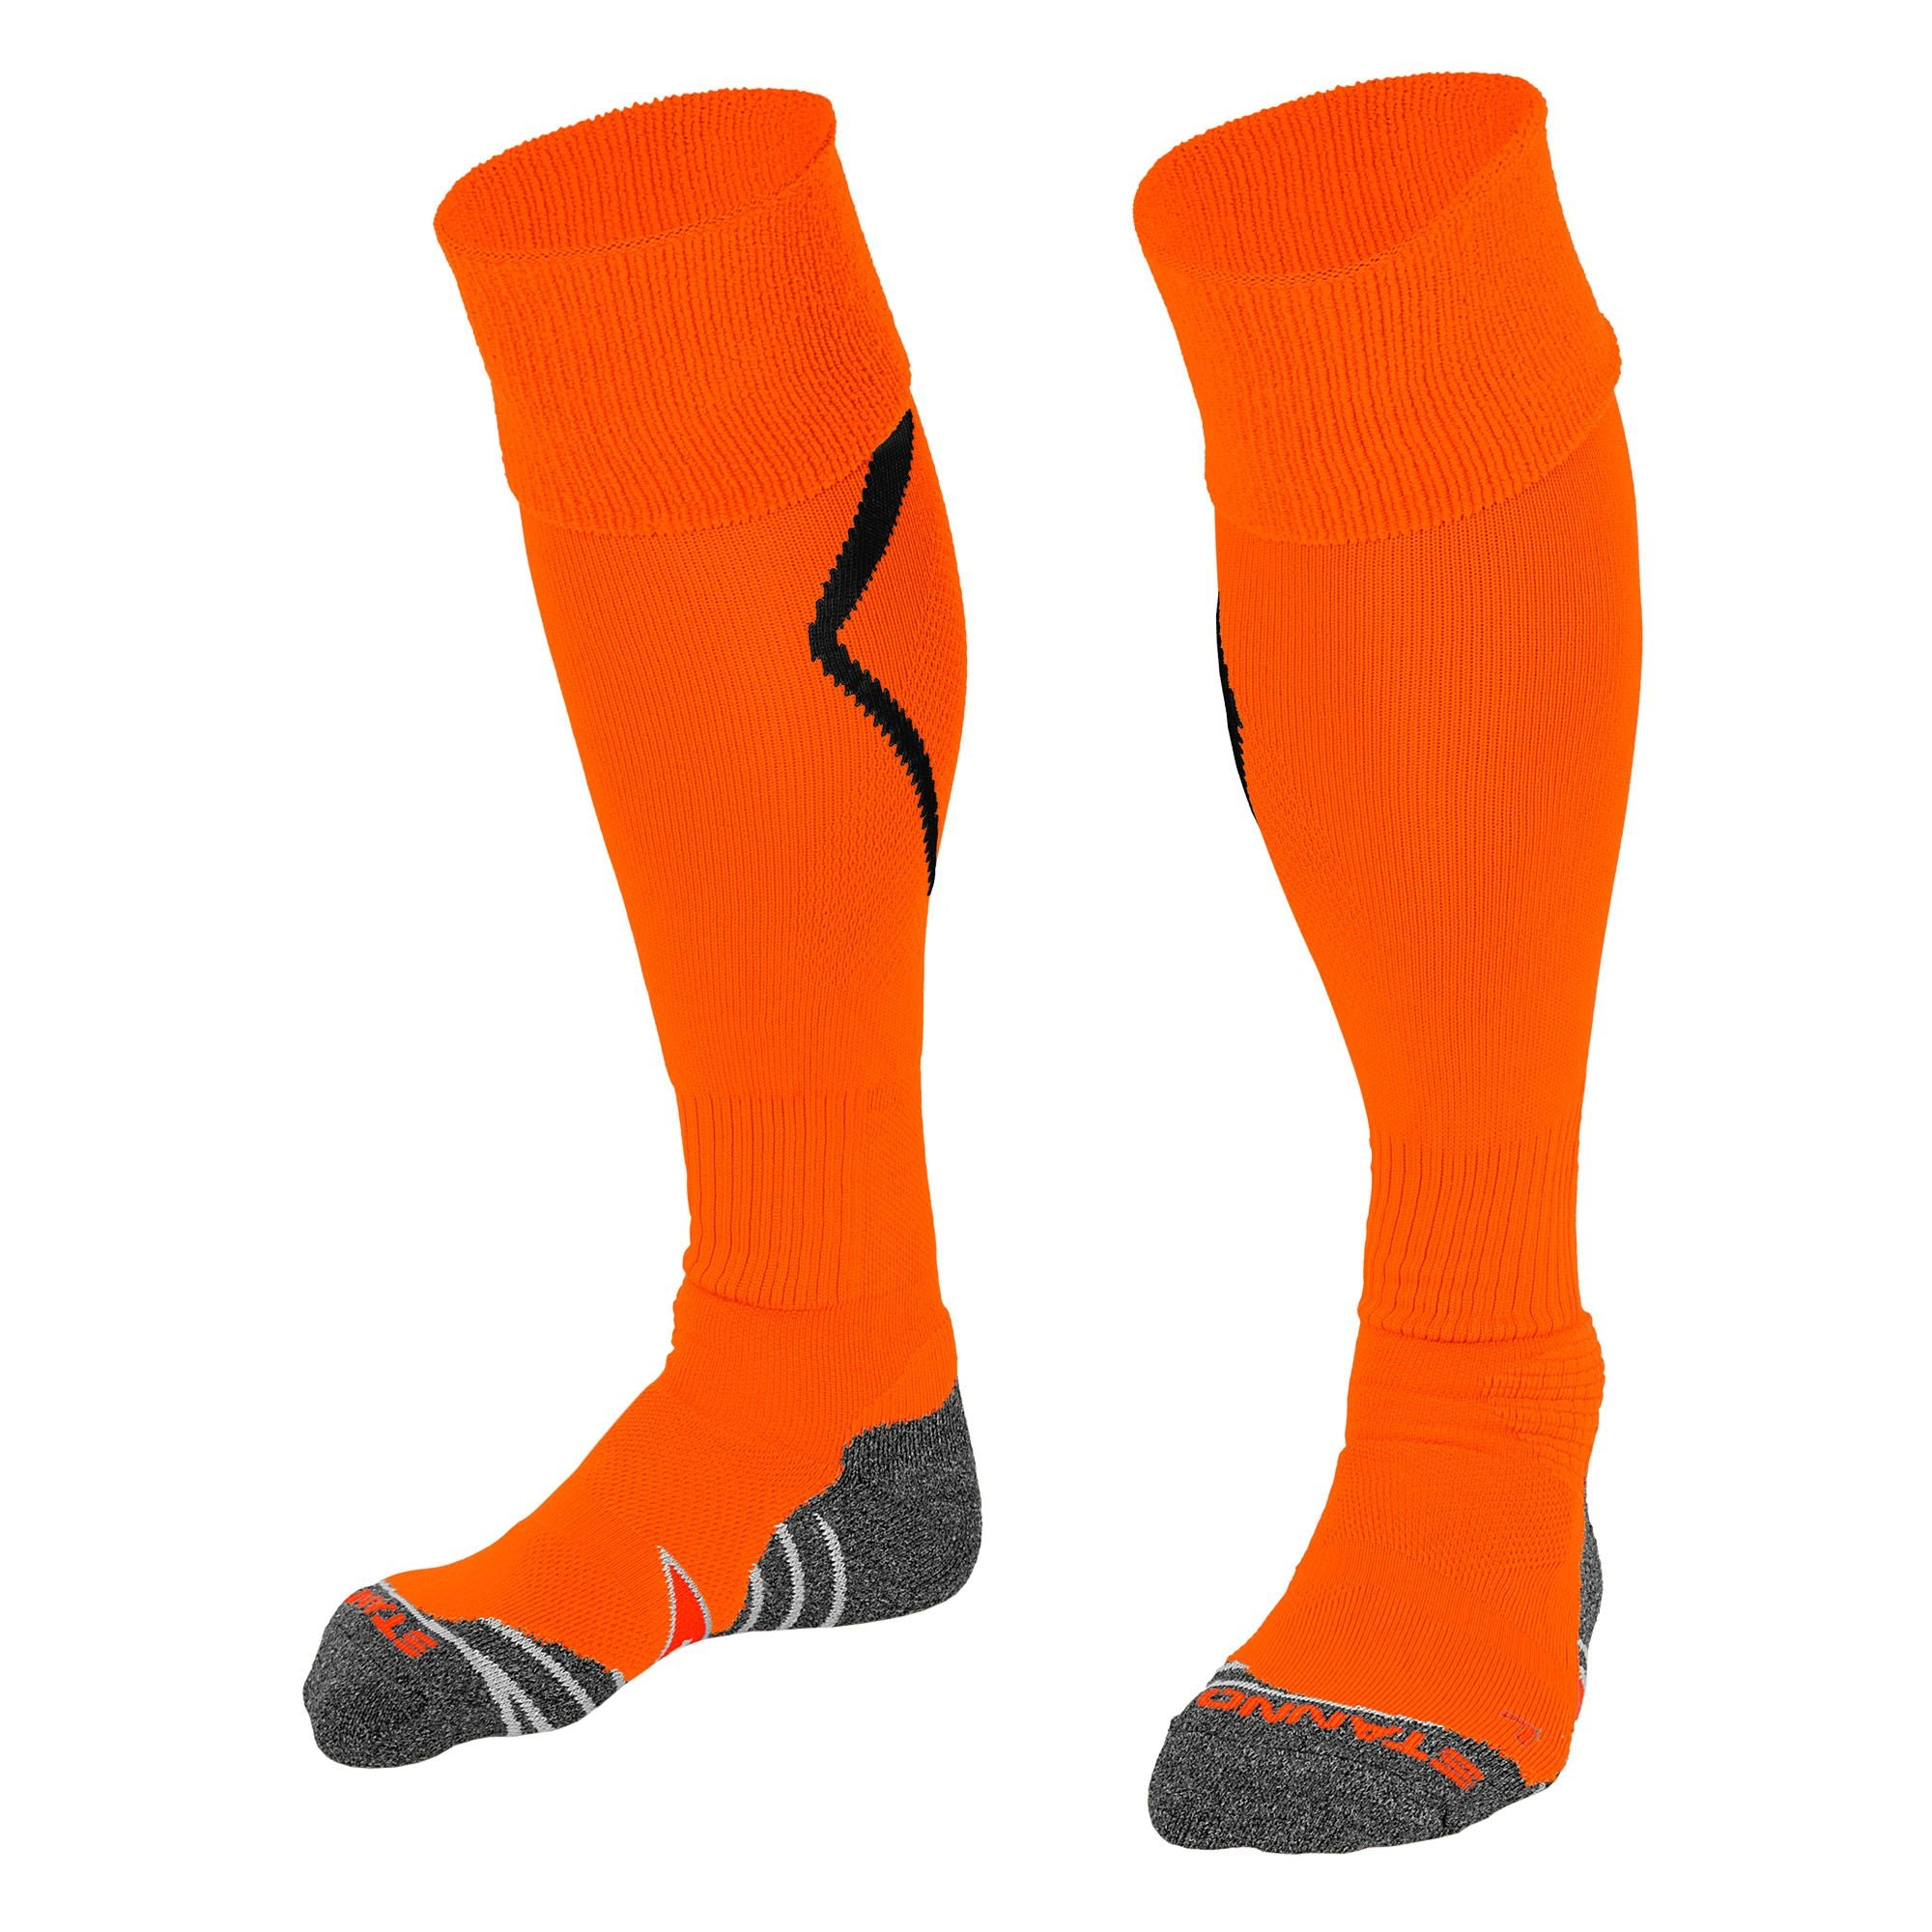 Stanno Forza socks in orange with black arrow design on the calf.